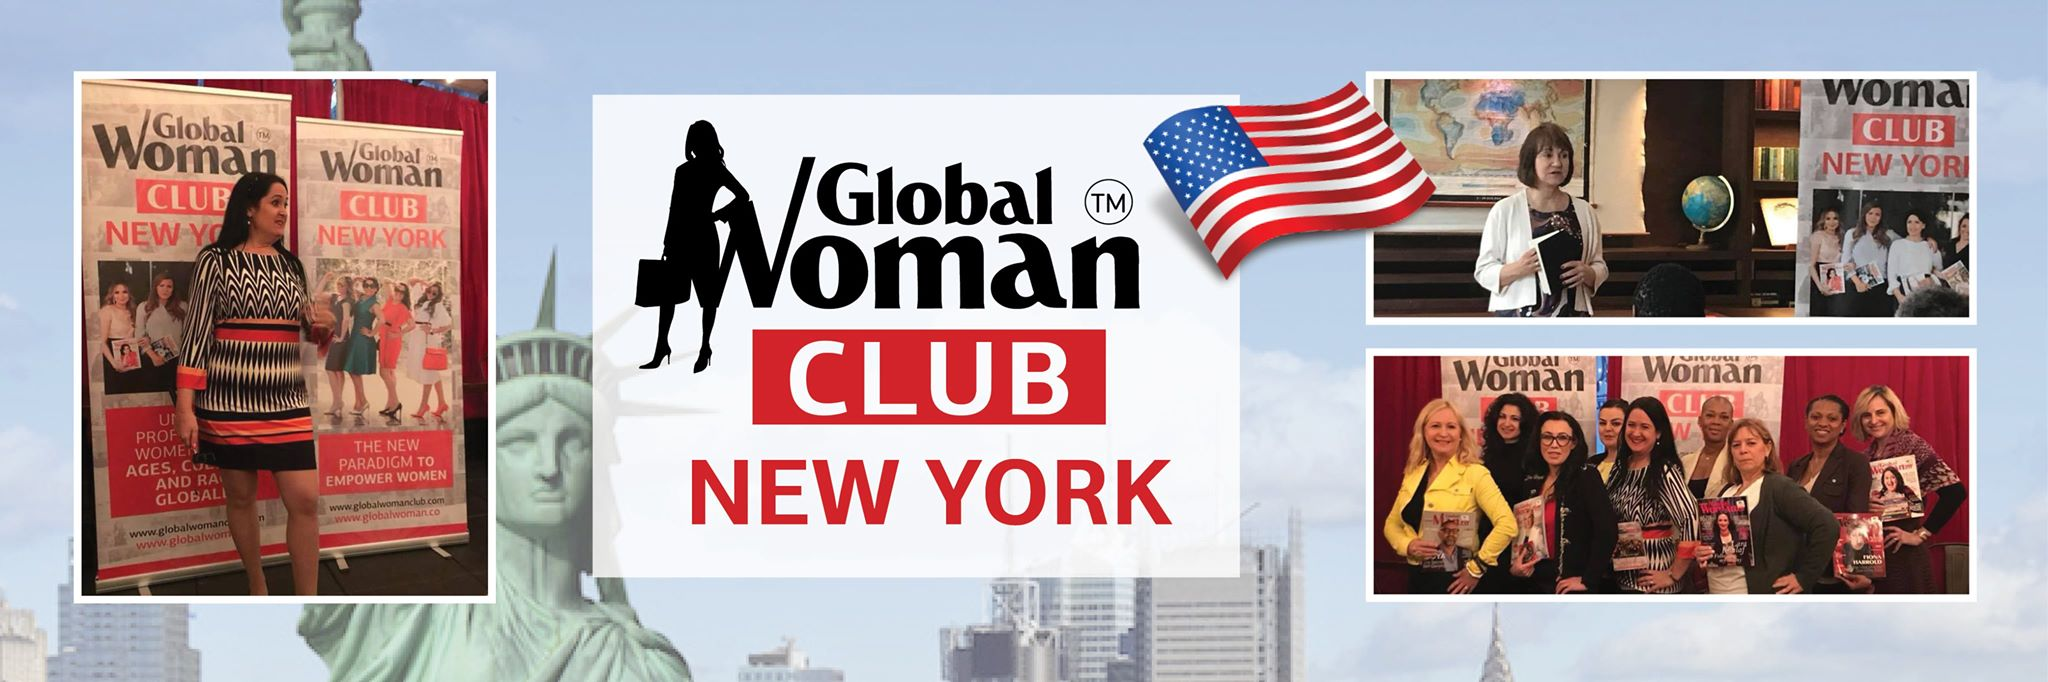 GLOBAL WOMAN CLUB NEW YORK: BUSINESS NETWORKING MEETING - MARCH